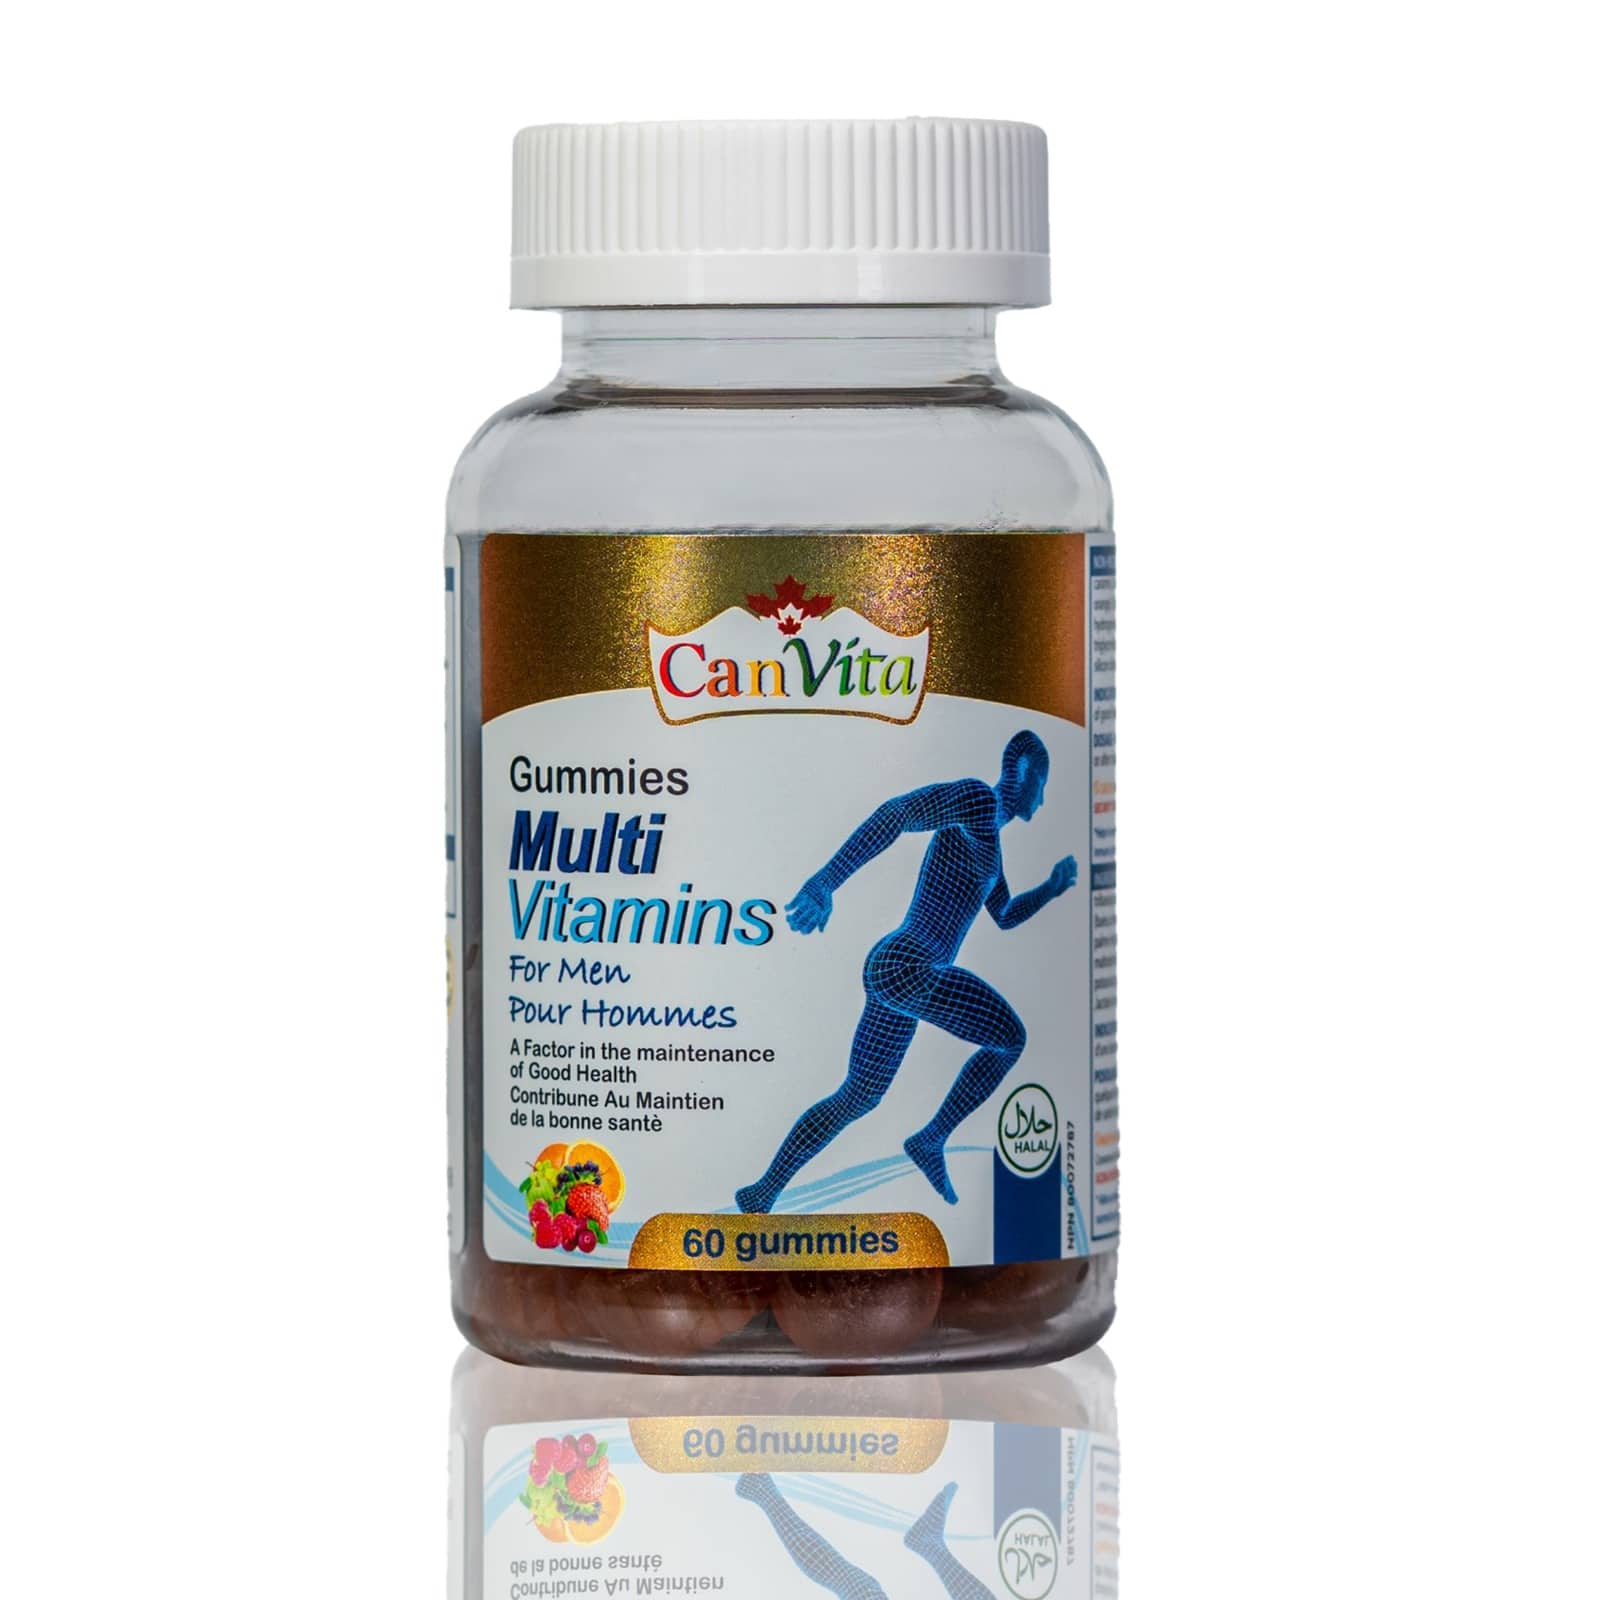 Canvita Men's multivitamin gummy